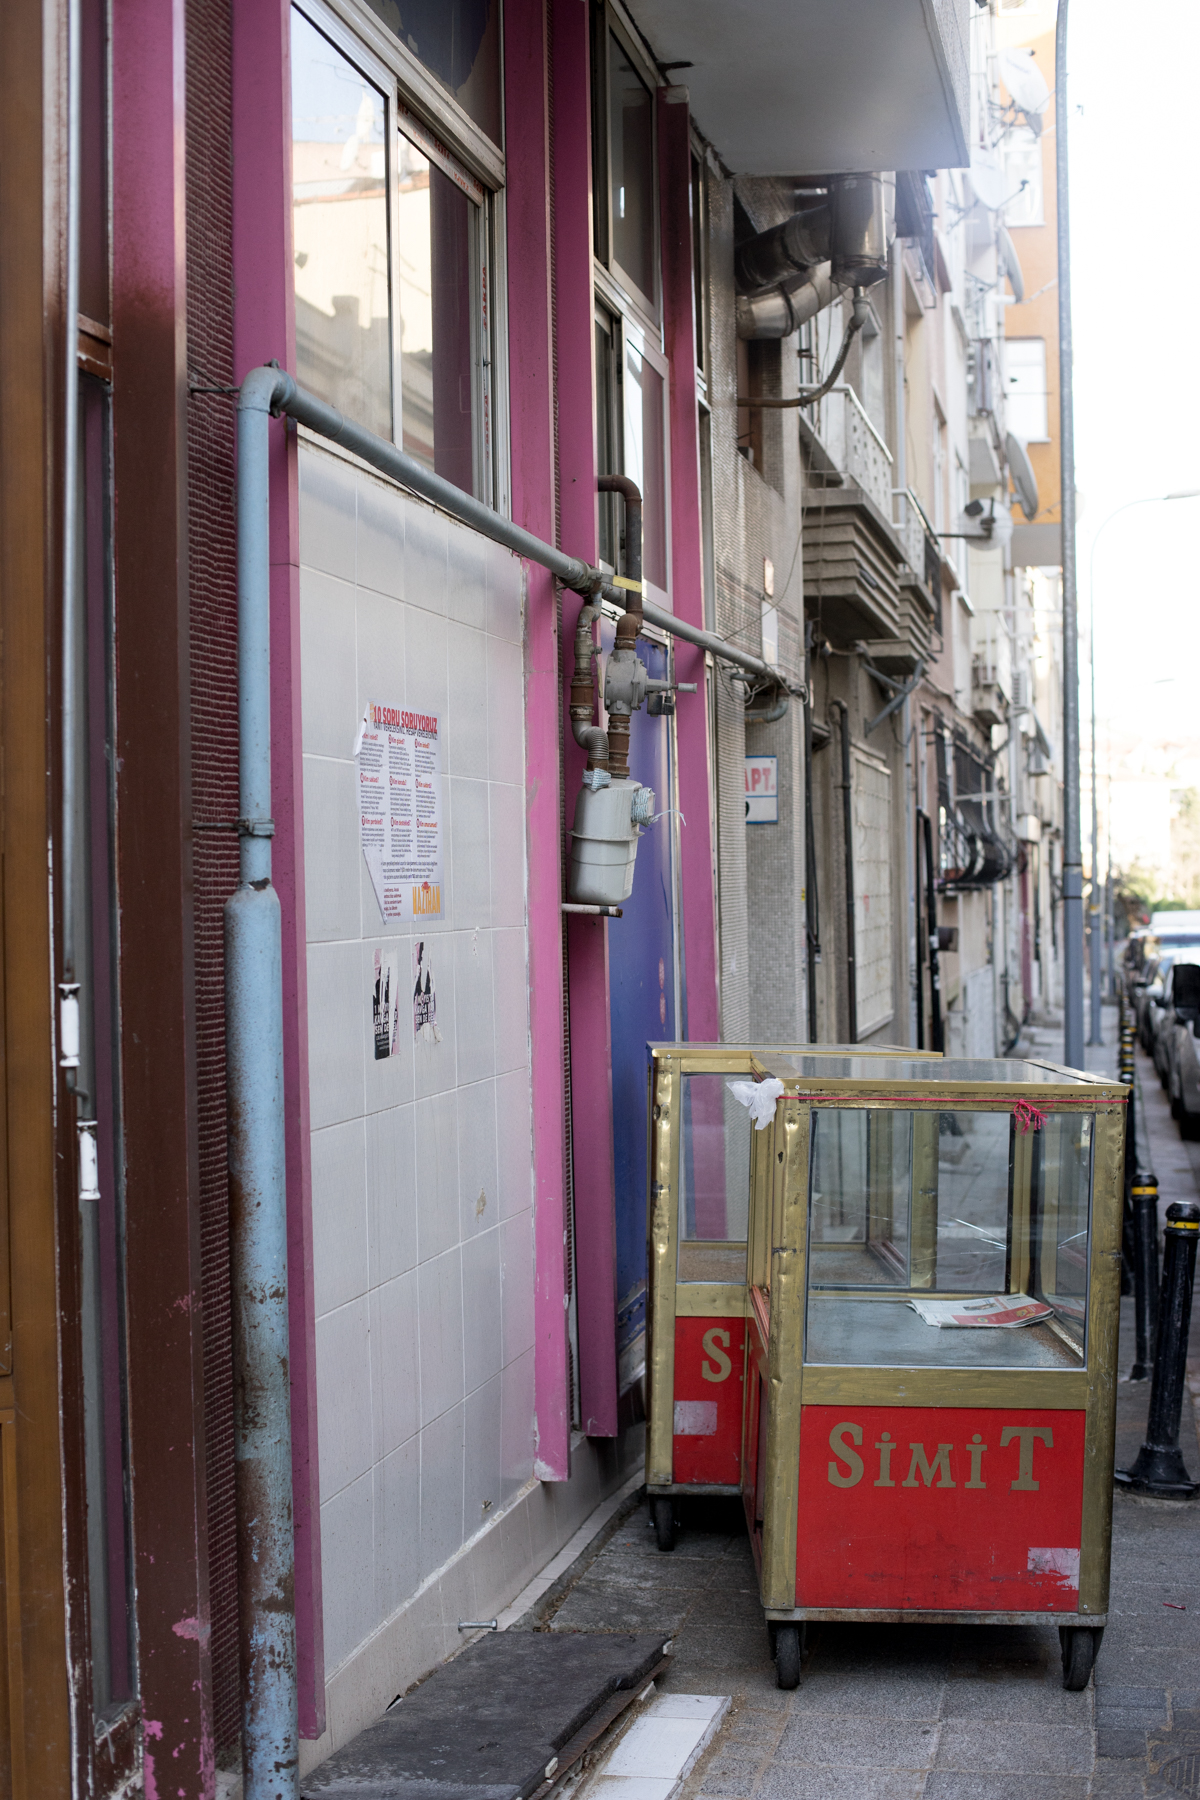 A sad, abandoned simit stand in the backstreets of Kadiköy.